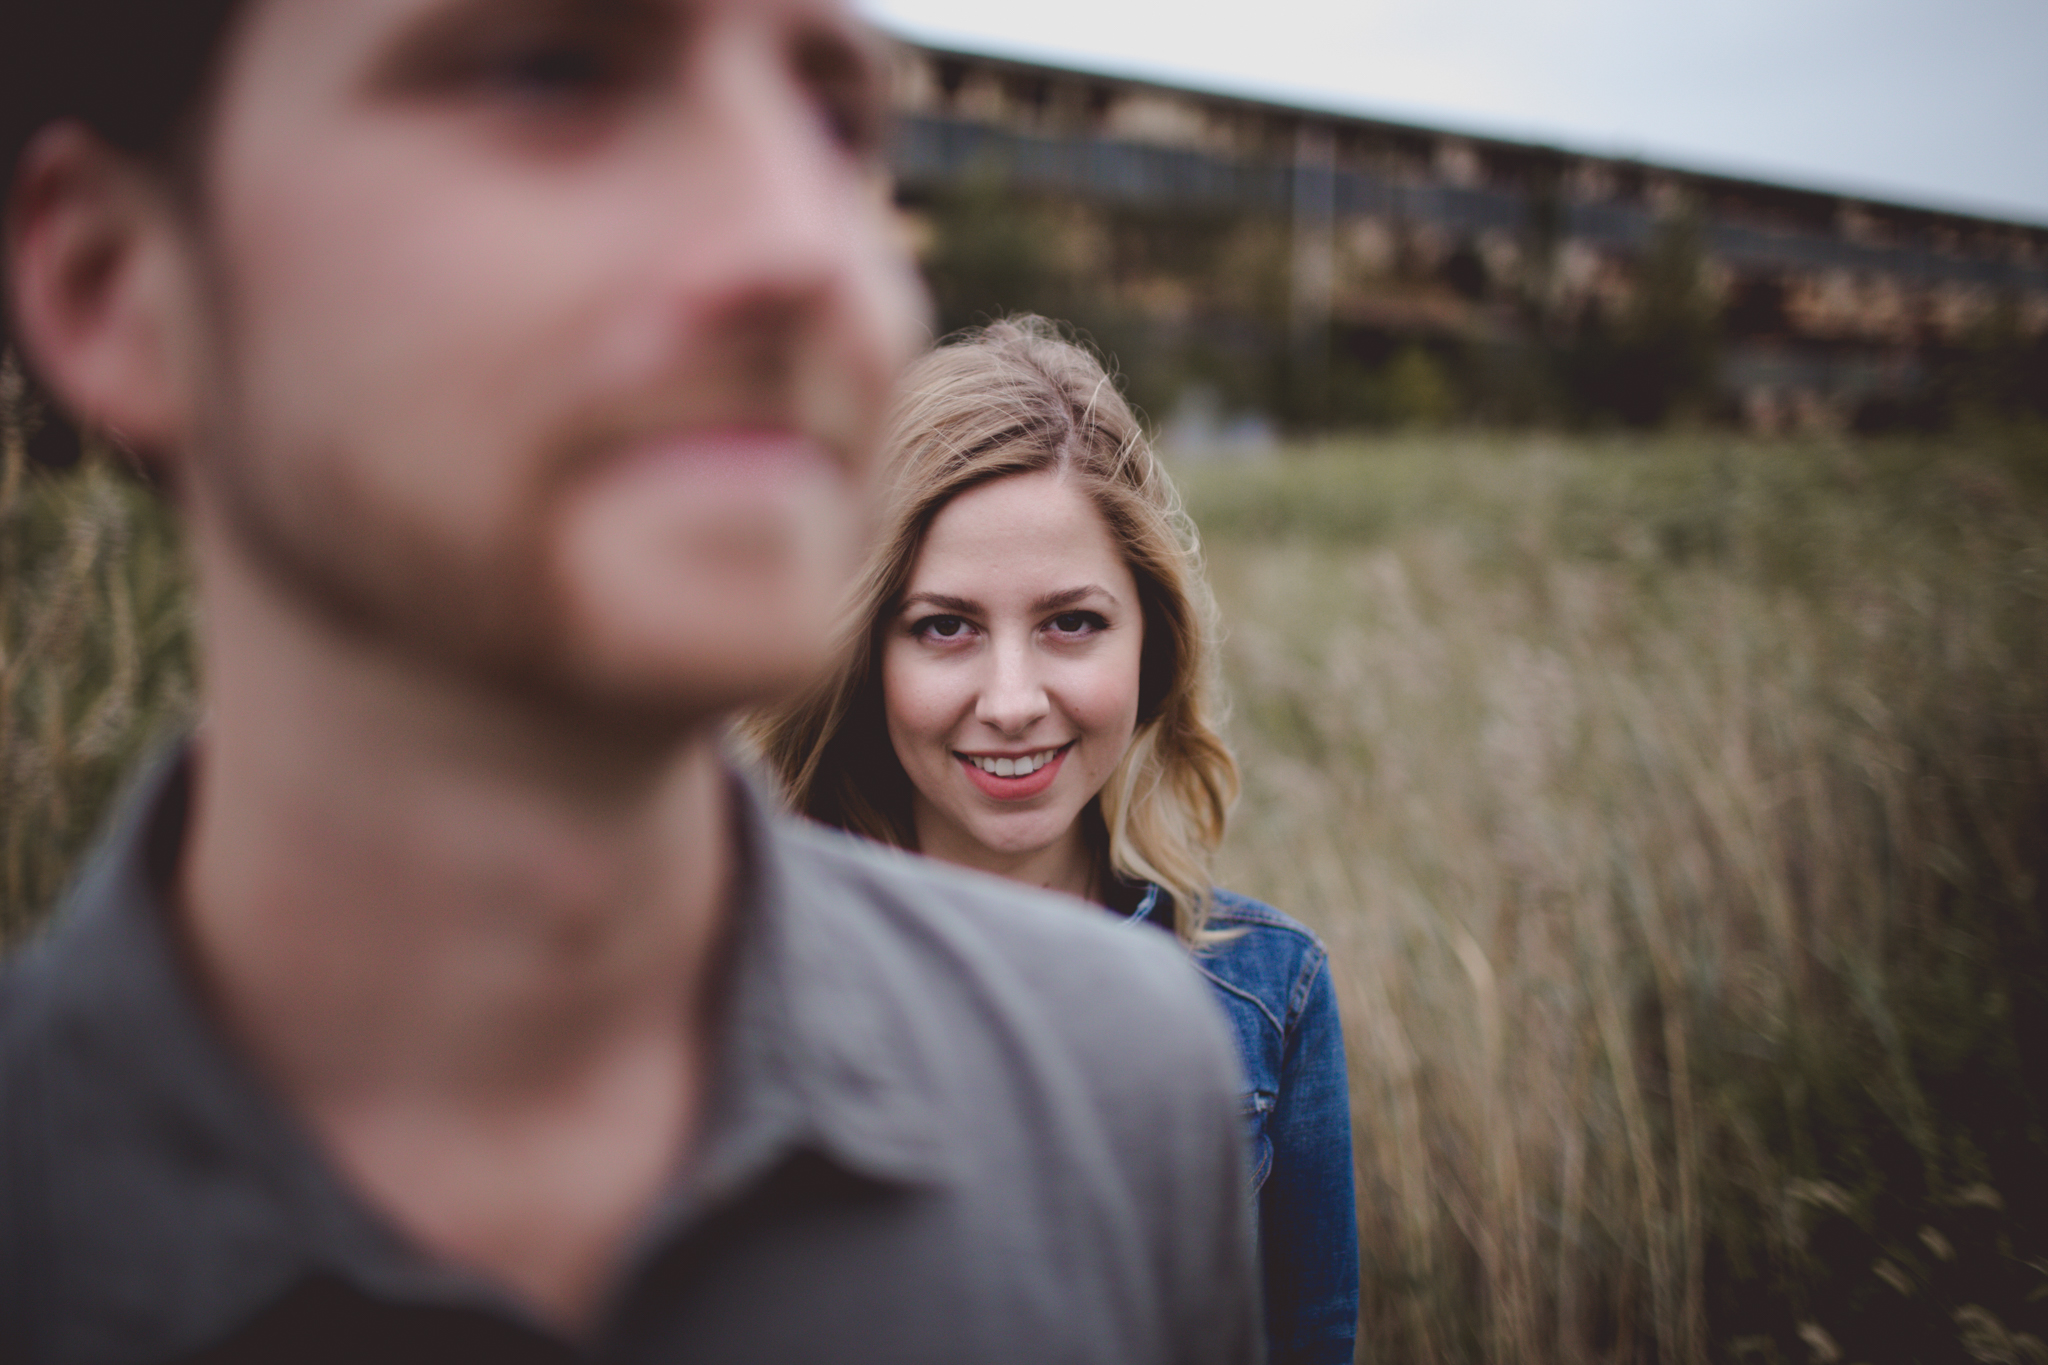 Cambria_Philly_Engagement_Photography-7969.jpg